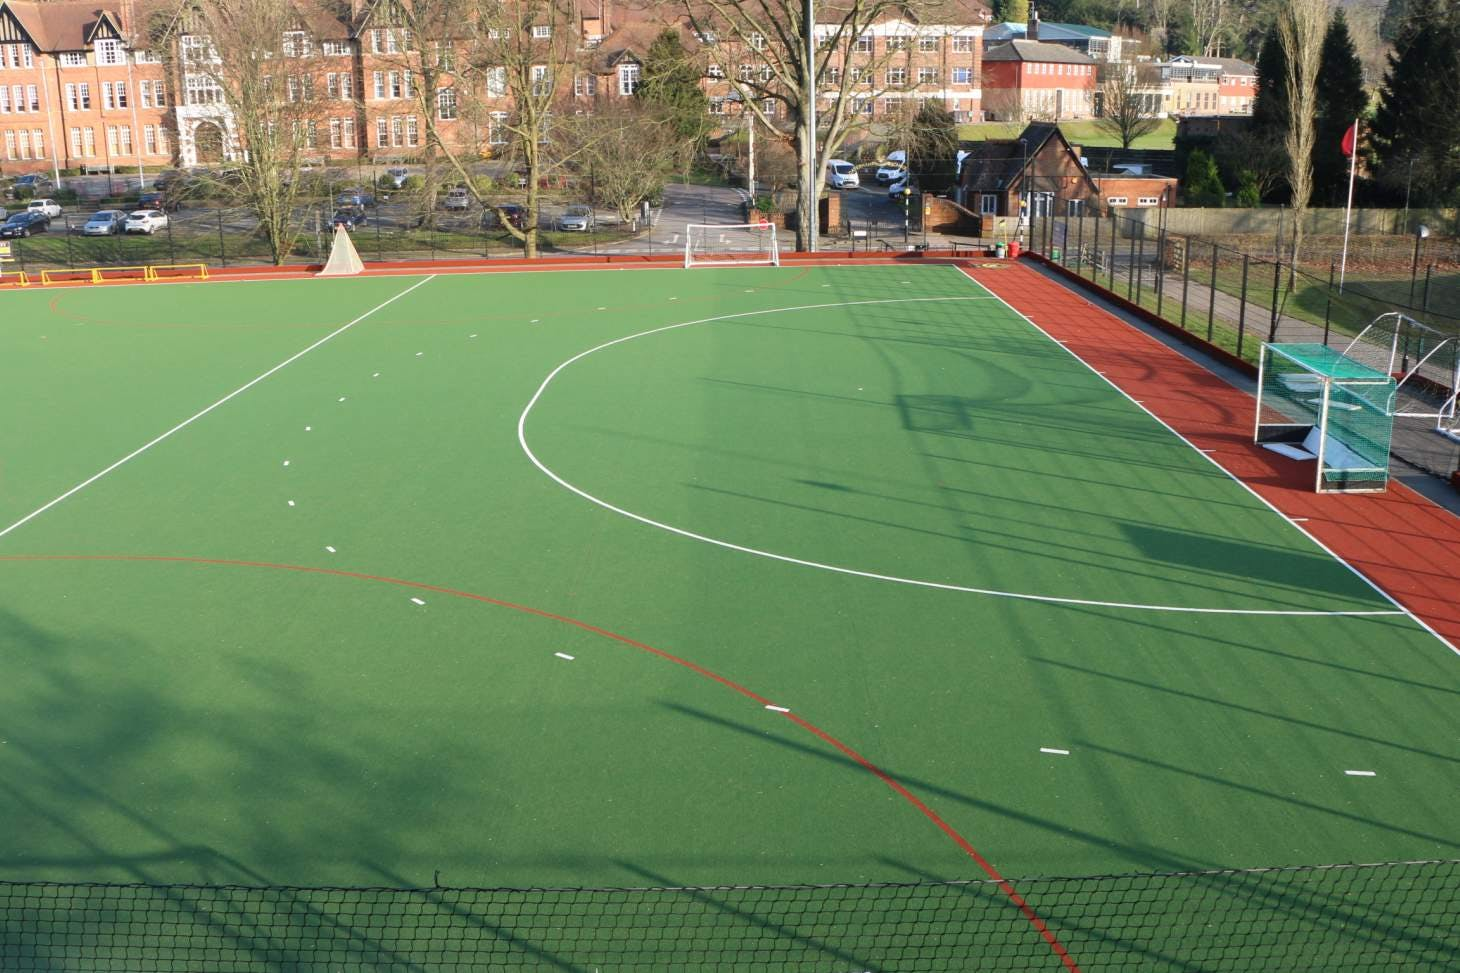 Caterham School Sports Centre 6 a side | Astroturf football pitch